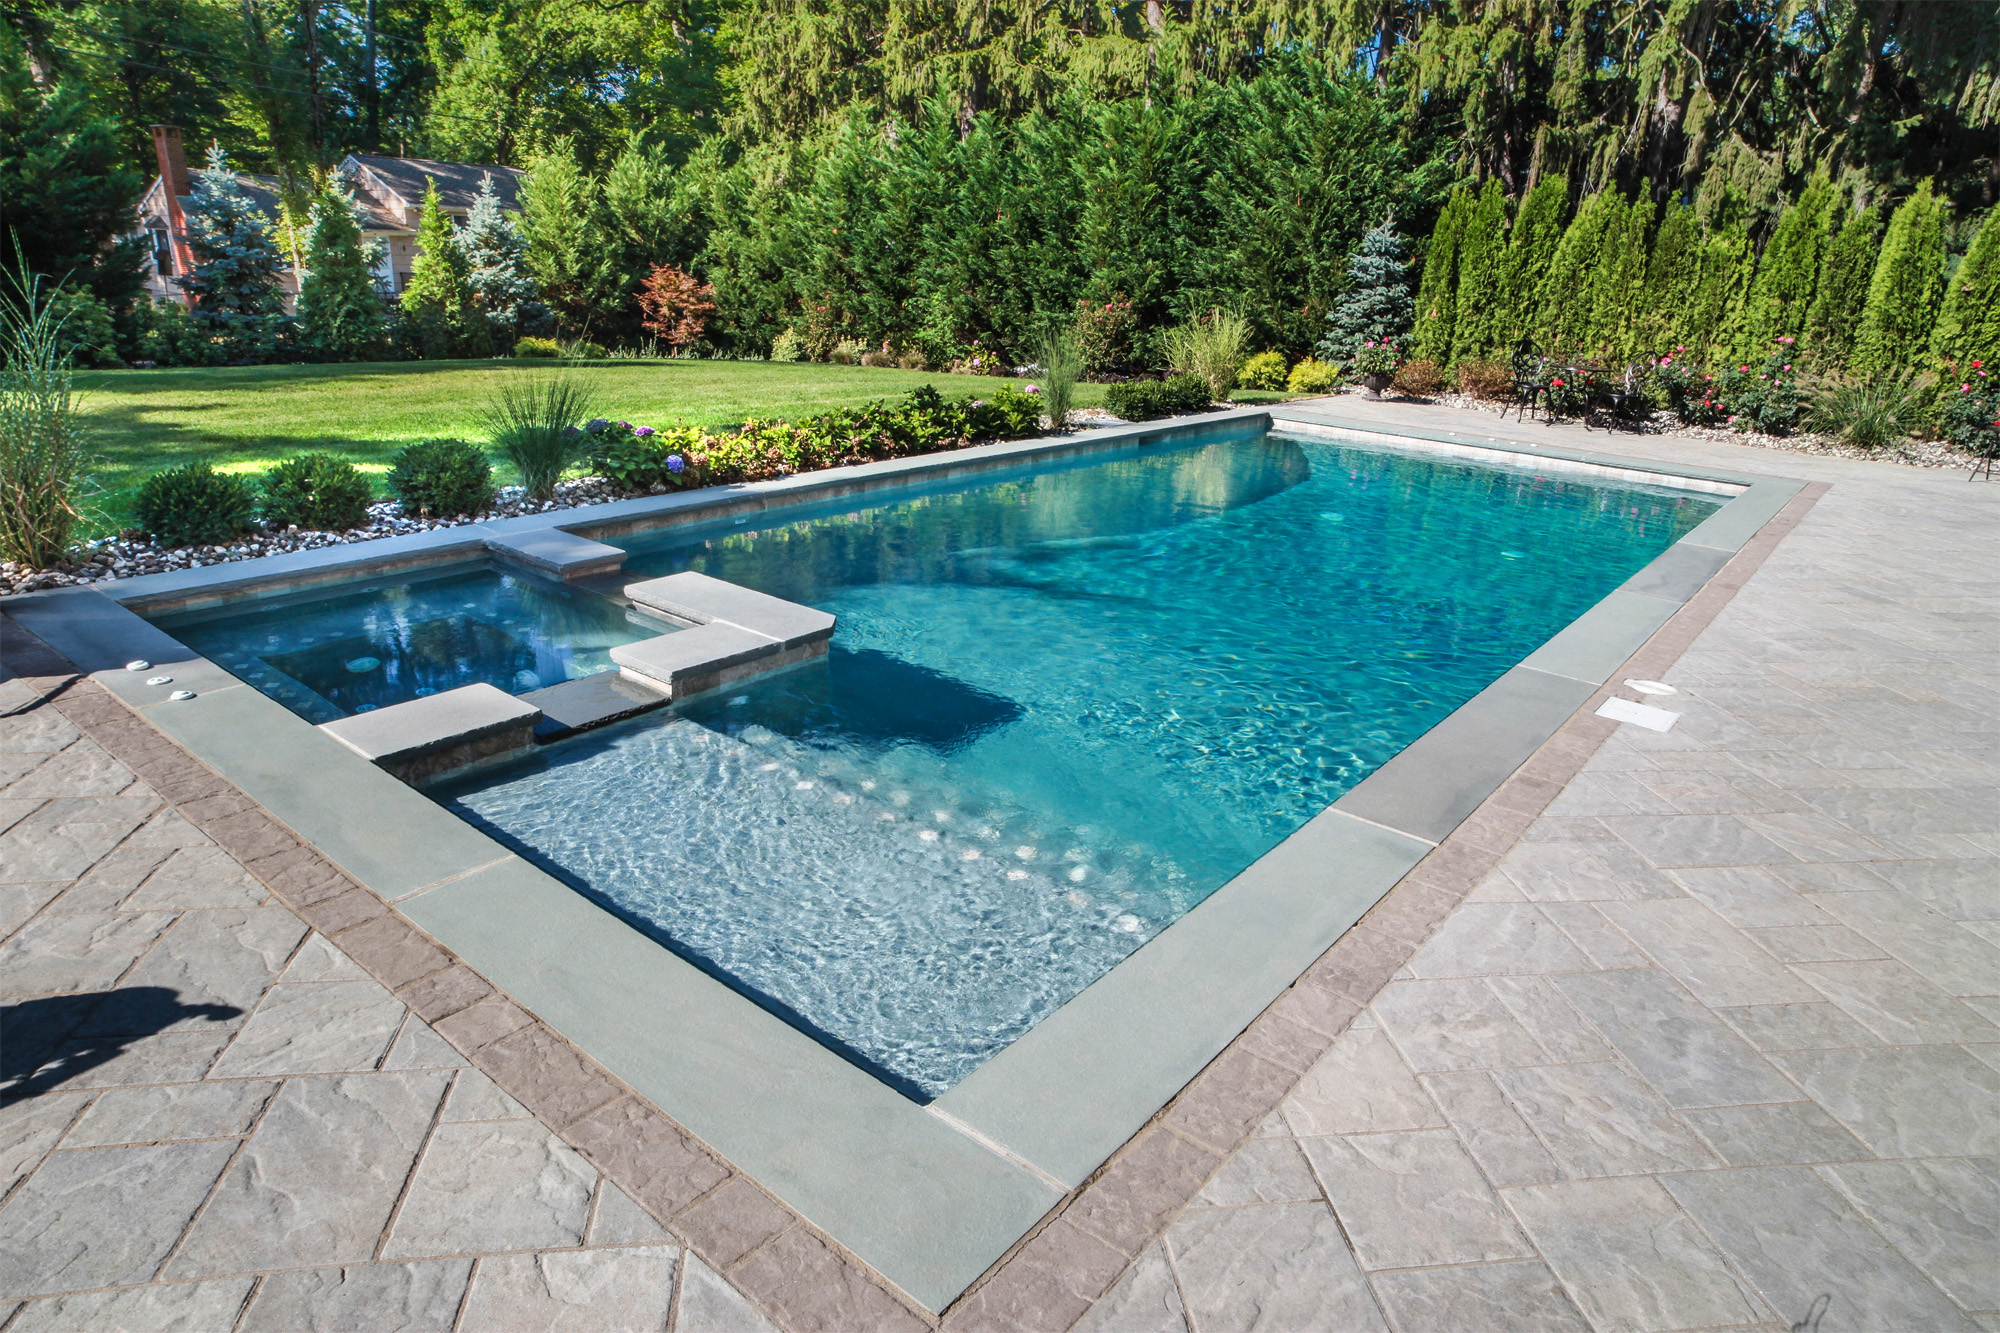 Emejing rectangular swimming pool designs photos for Pool design nj